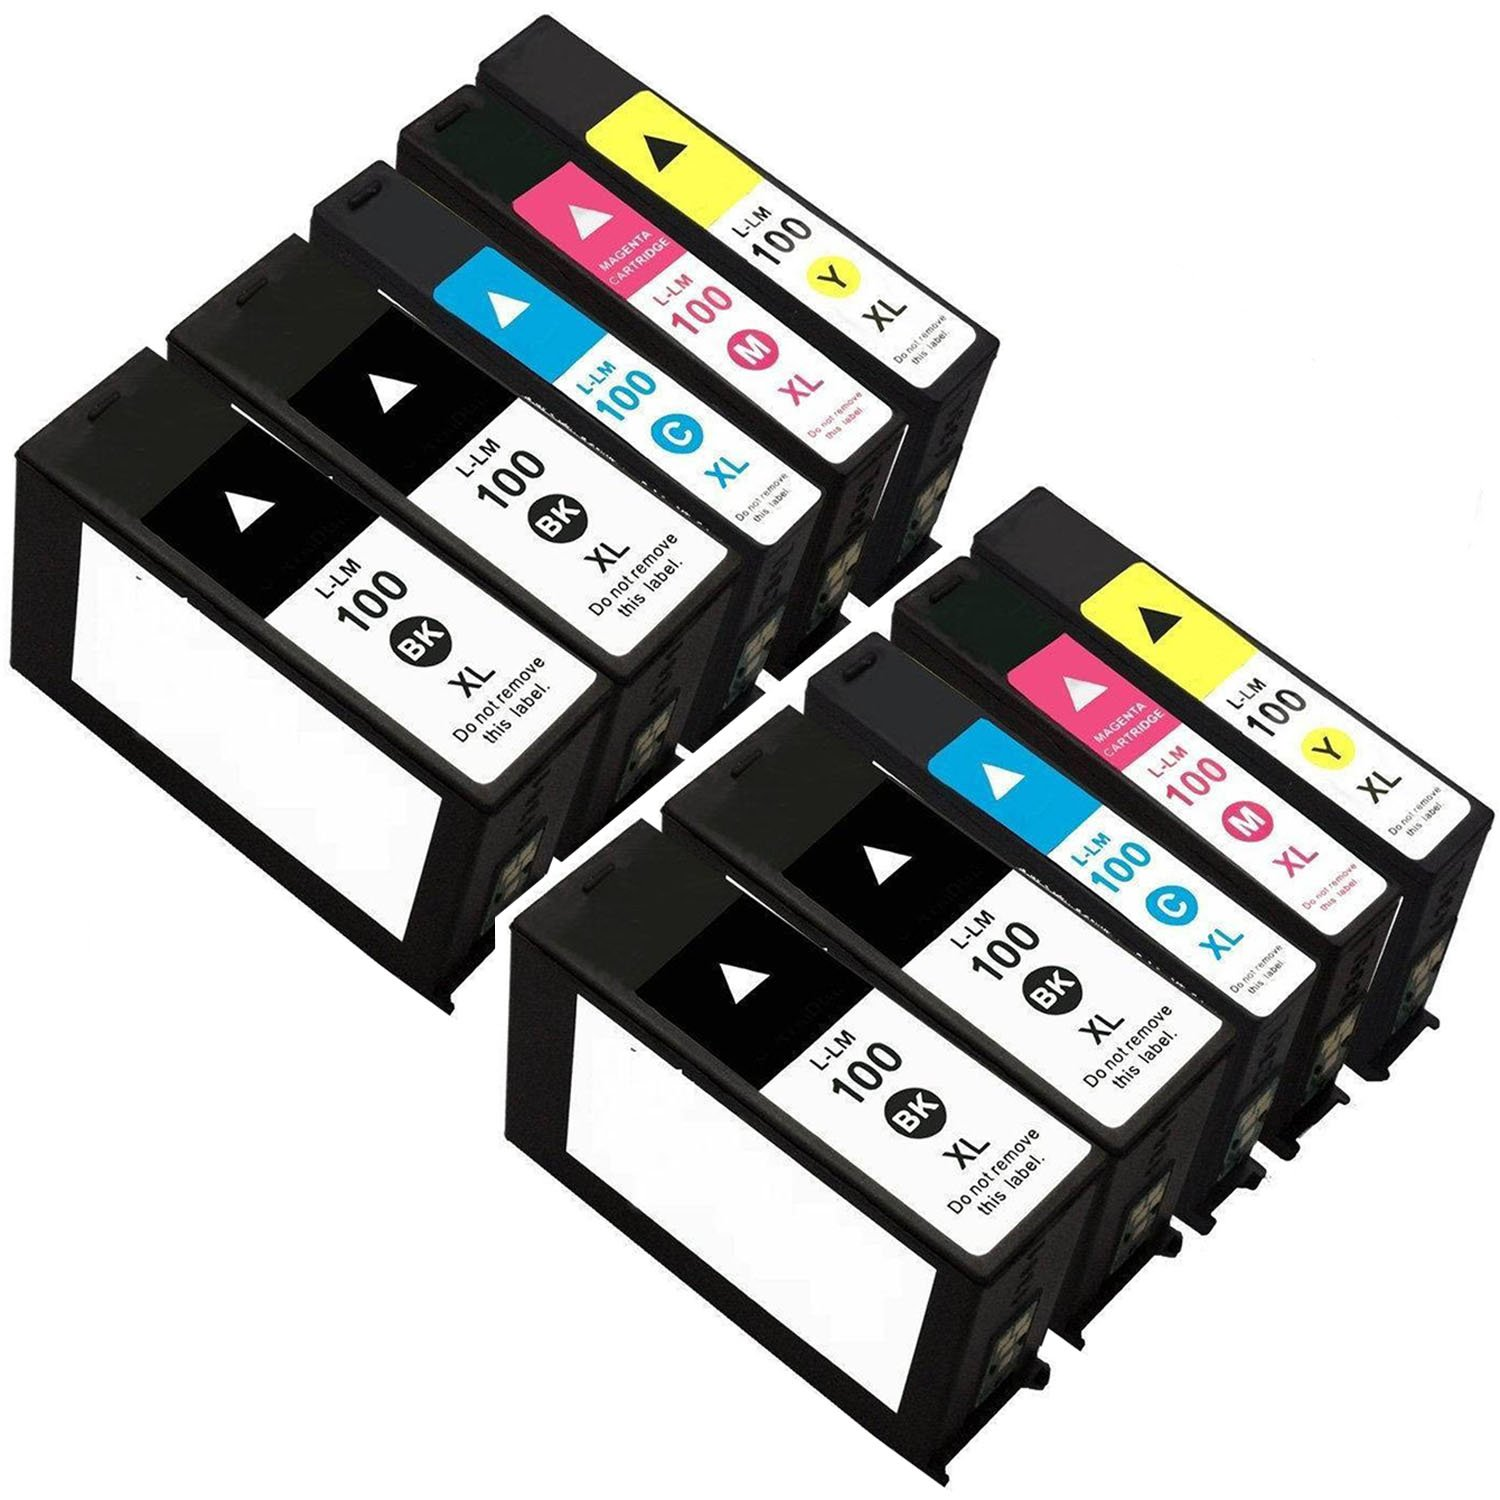 ZR-Printing ZR100XL Ink Cartridge Replacement for Lexmark 100 105 108 XL LM100 ink Cartridge Compatible for S305 S308 S405 S408 S505 S508 S605 S608 Printer with chip(4 Black 2 Cyan 2 Megenta 2 Yellow)